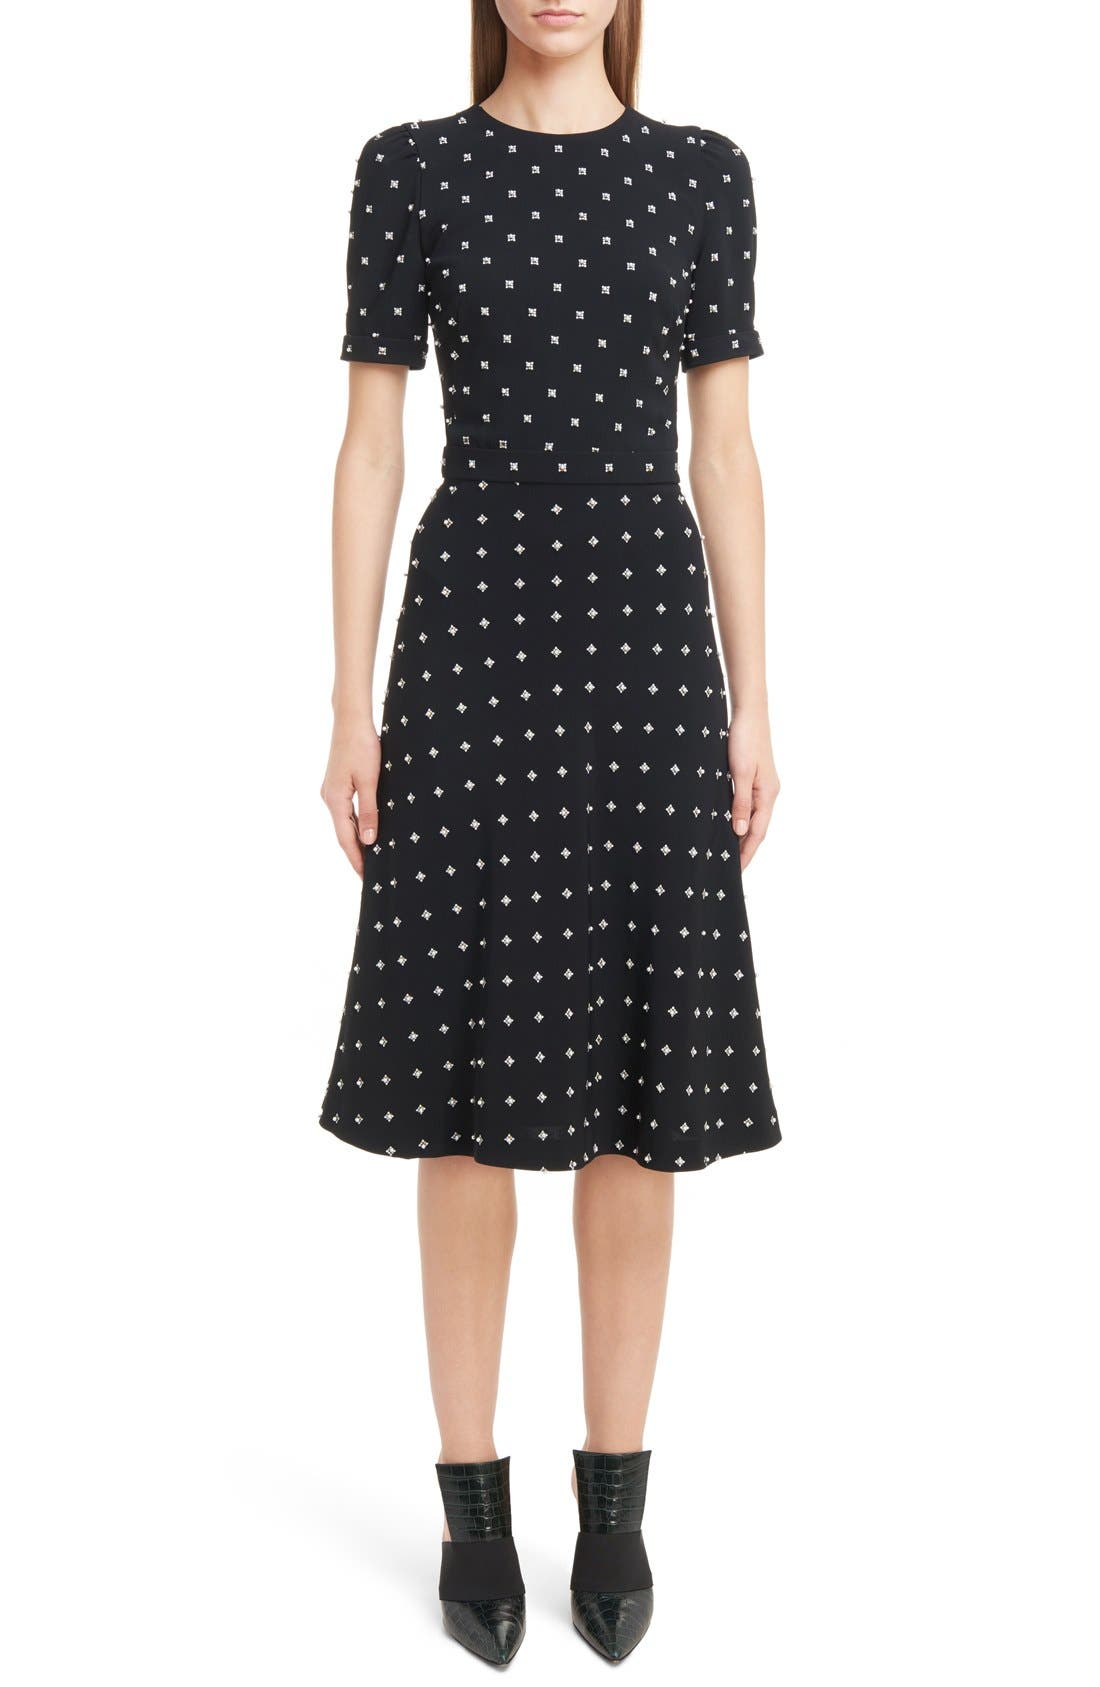 GIVENCHY Imitation Pearl Embellished Lily Print Dress